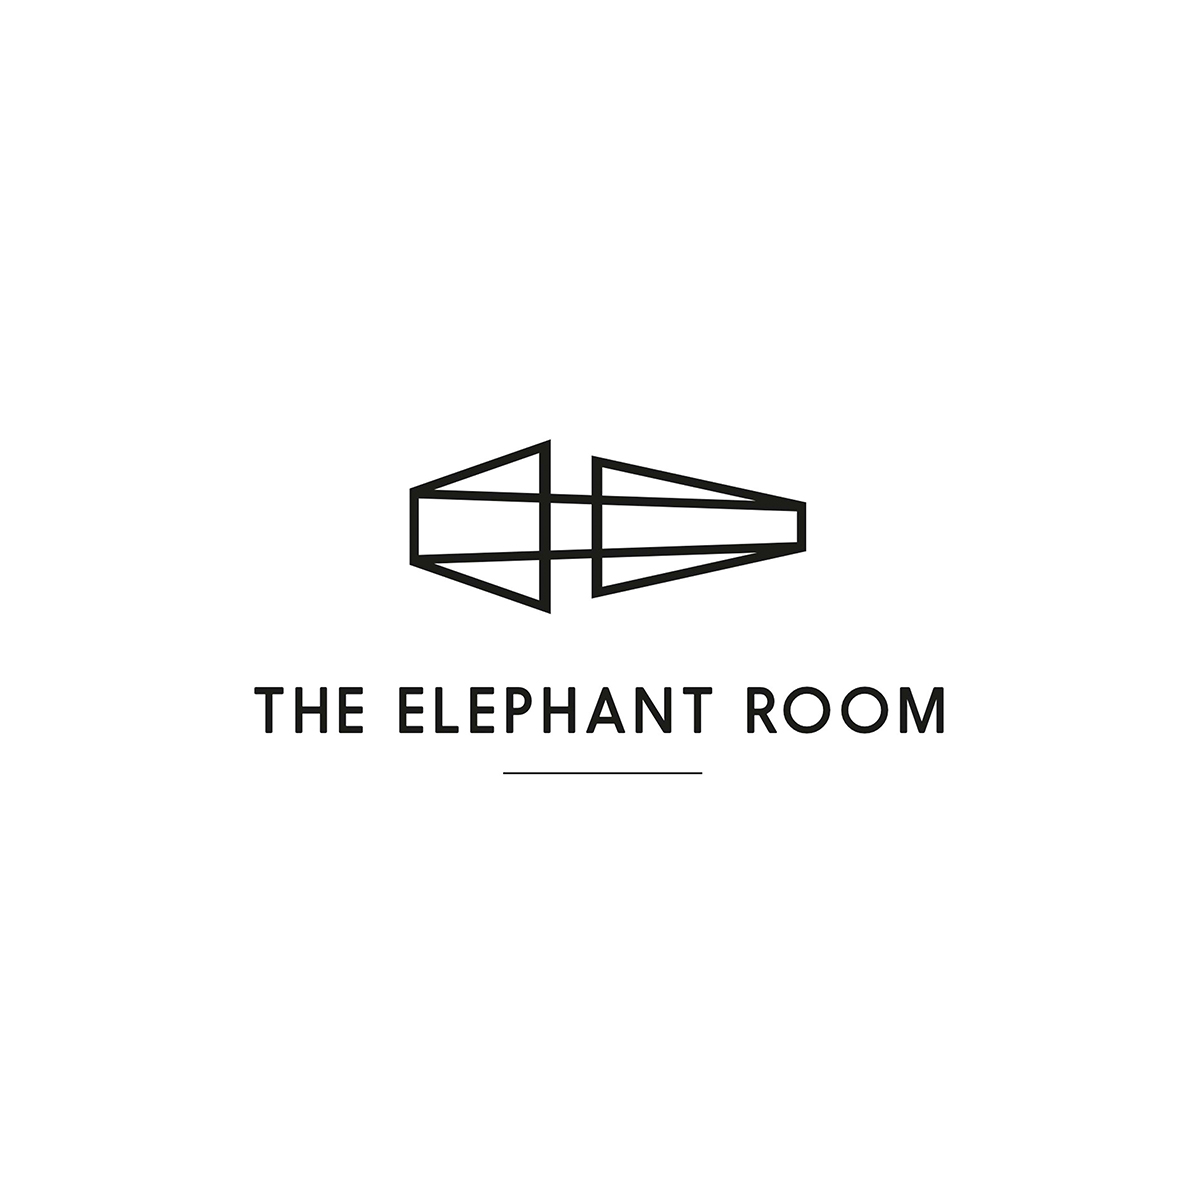 the elephant room.jpg